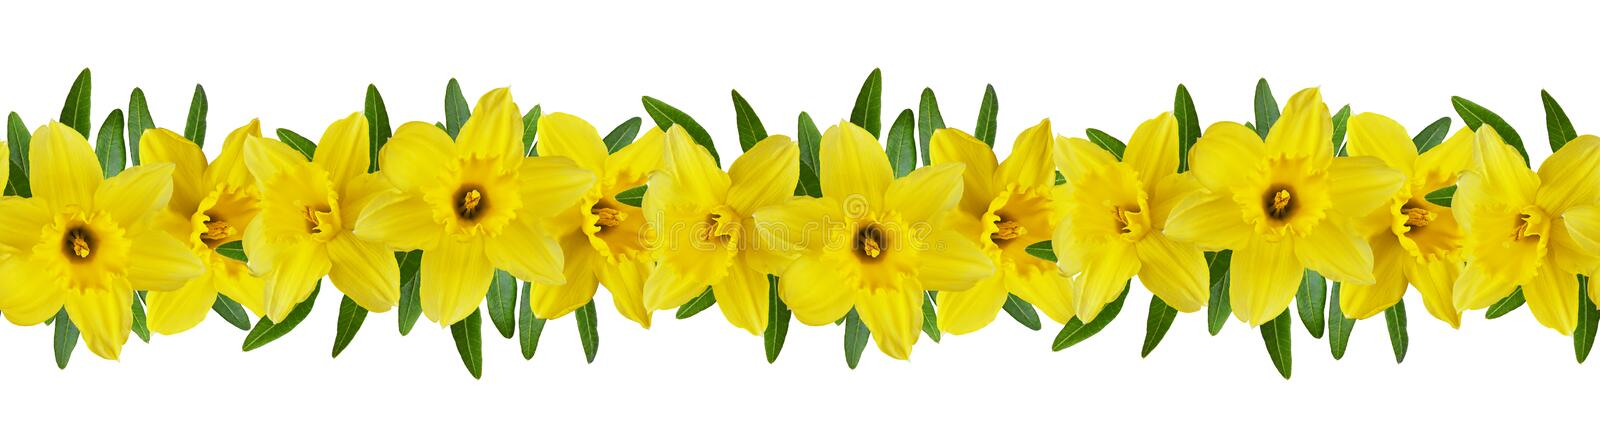 Yellow narcissus flowers in a seamless line floral pattern. Isolated on white stock photography